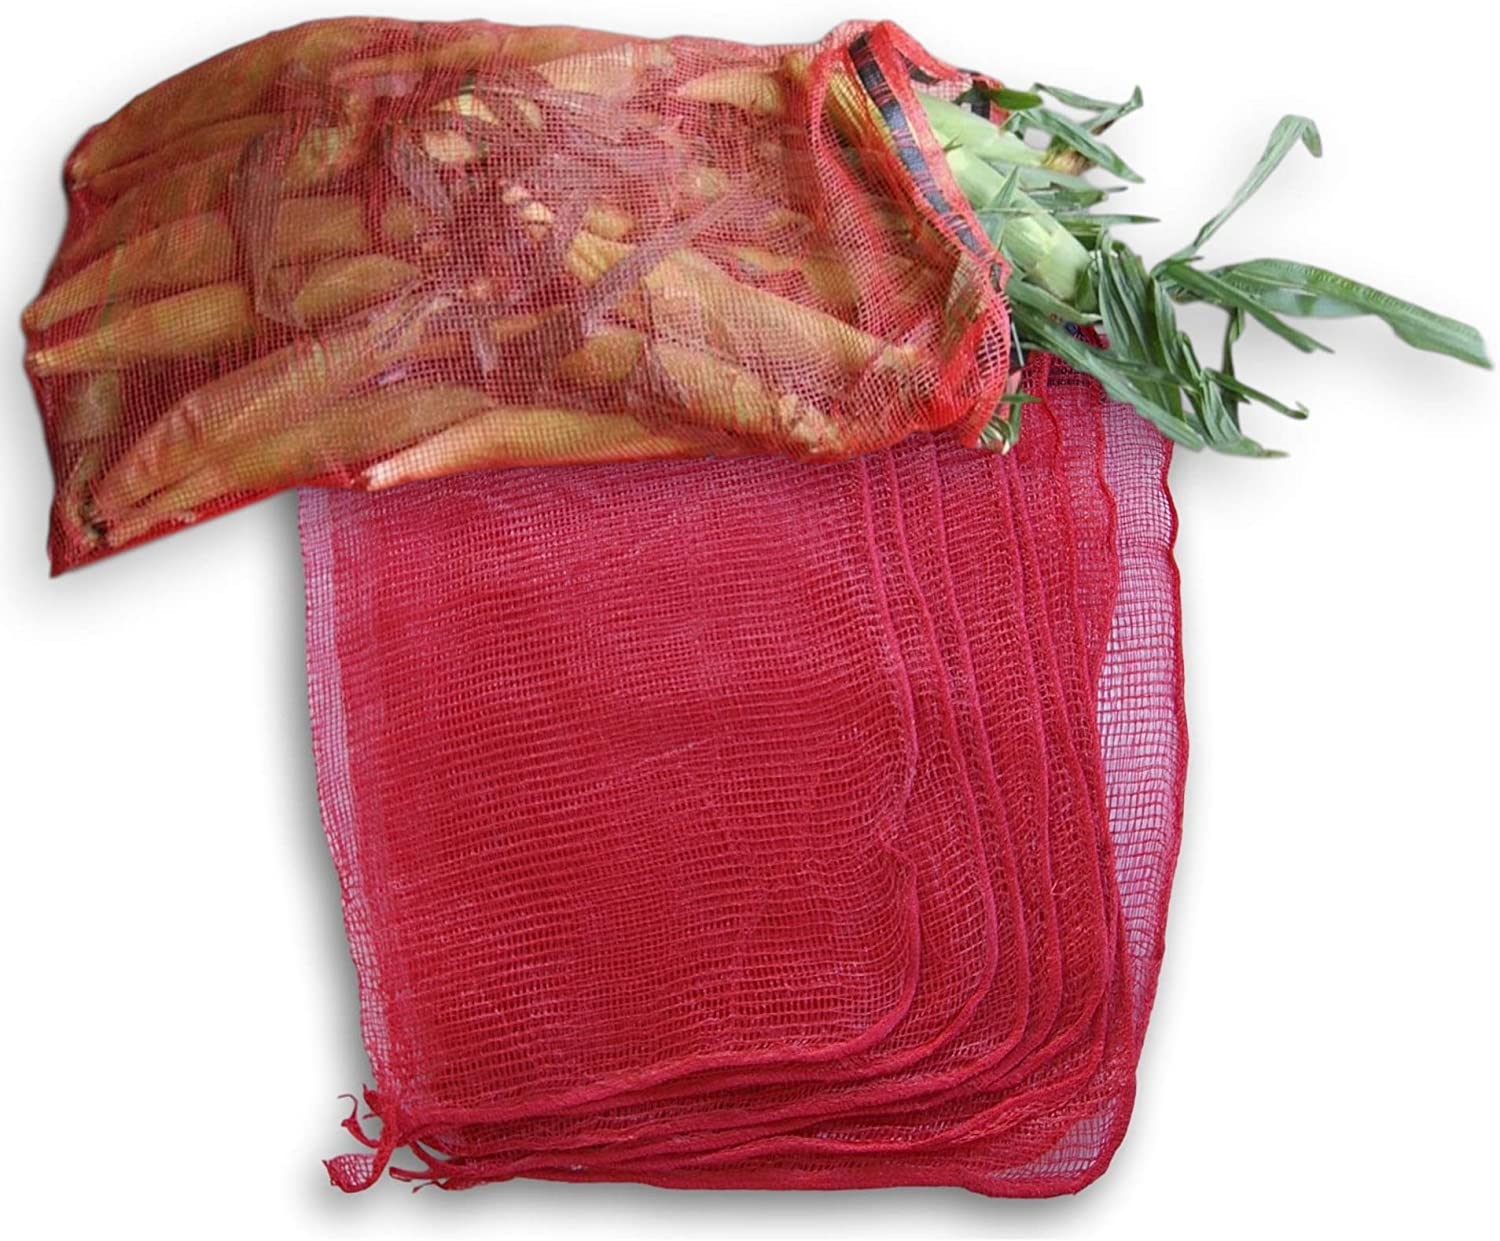 8 Large Heavy-Duty Storage/Produce Bags for Garden Corn, Potatoes, Onions - Holds up to 50 lbs (8 Red Mesh Bags) 31.5 X 21 Inches